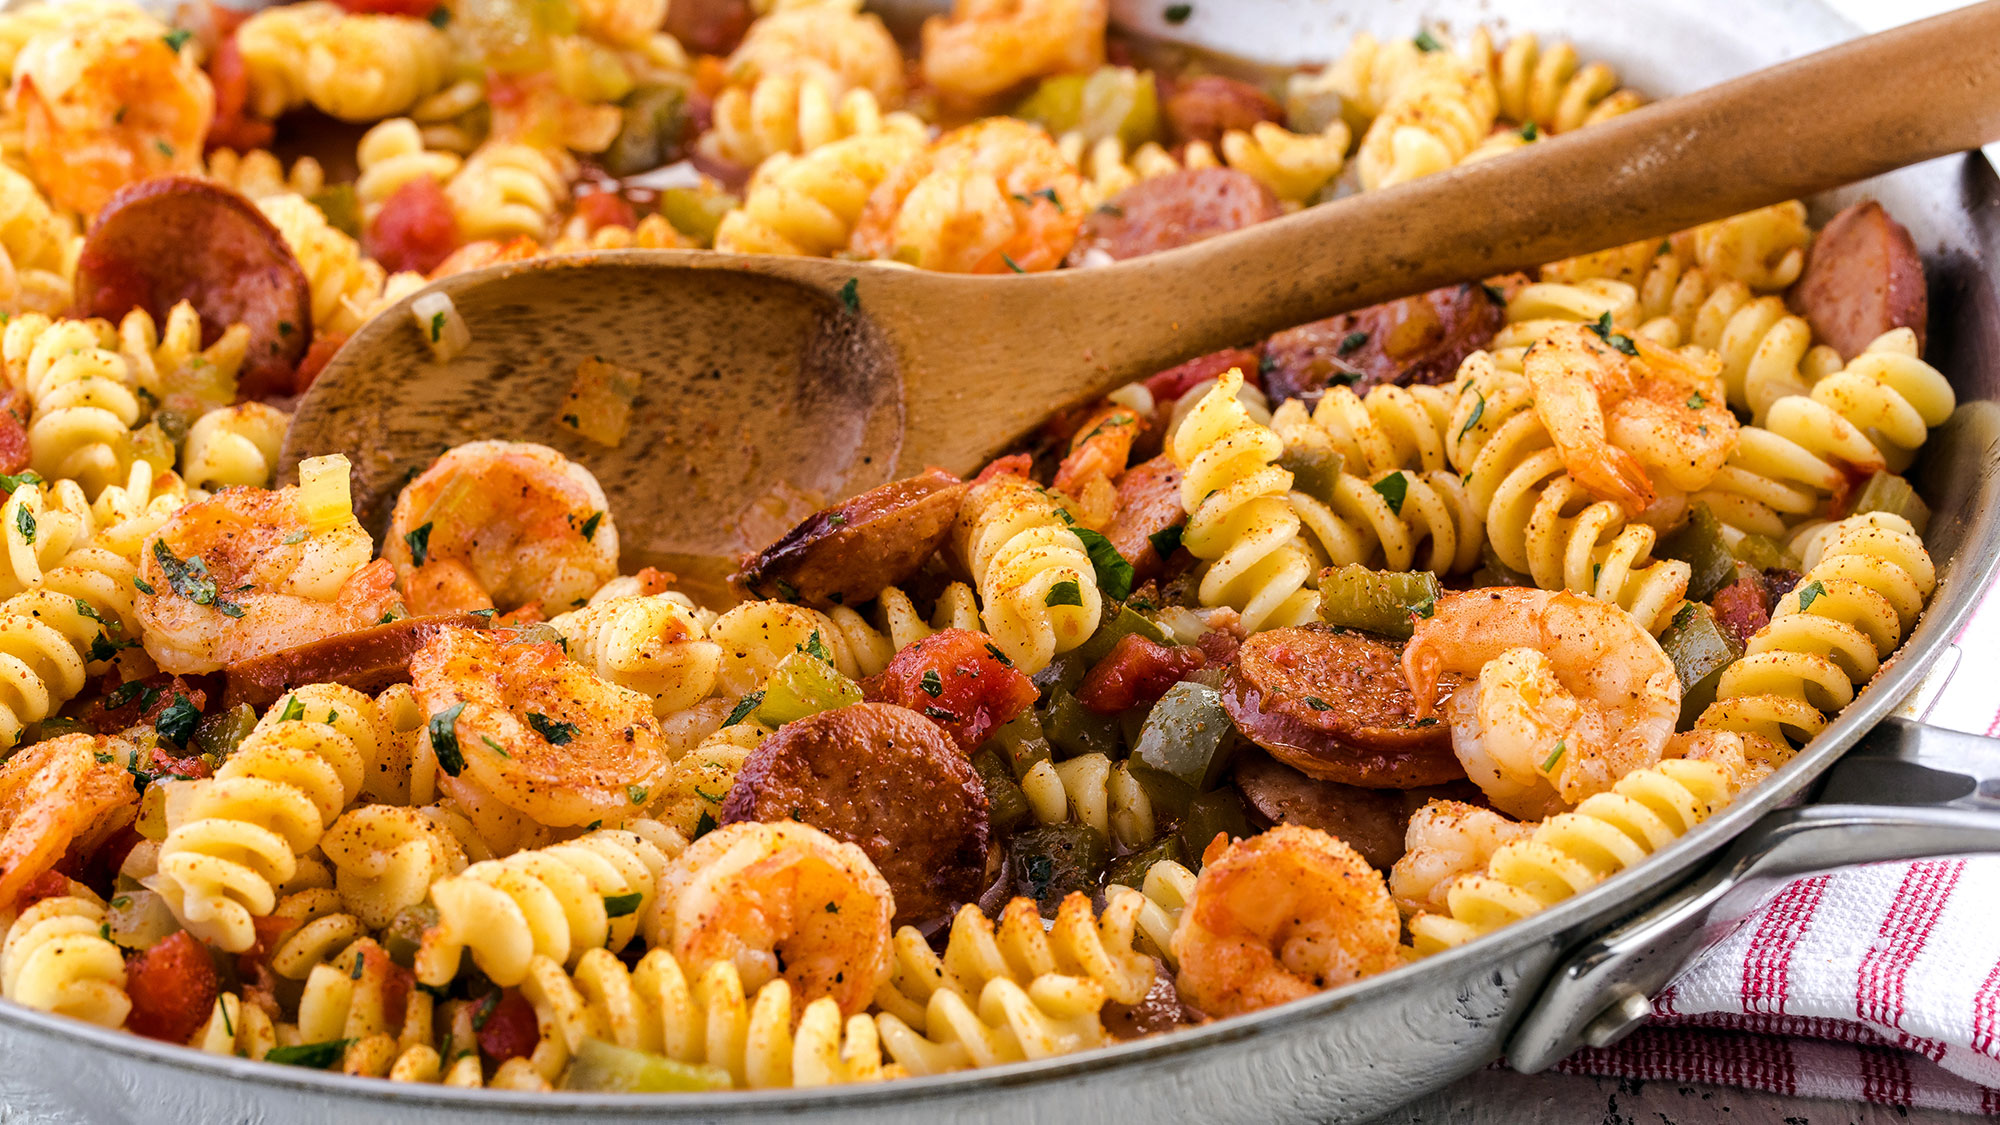 Shrimp-and-Sausage-Pastalaya-2000x1125.jpg